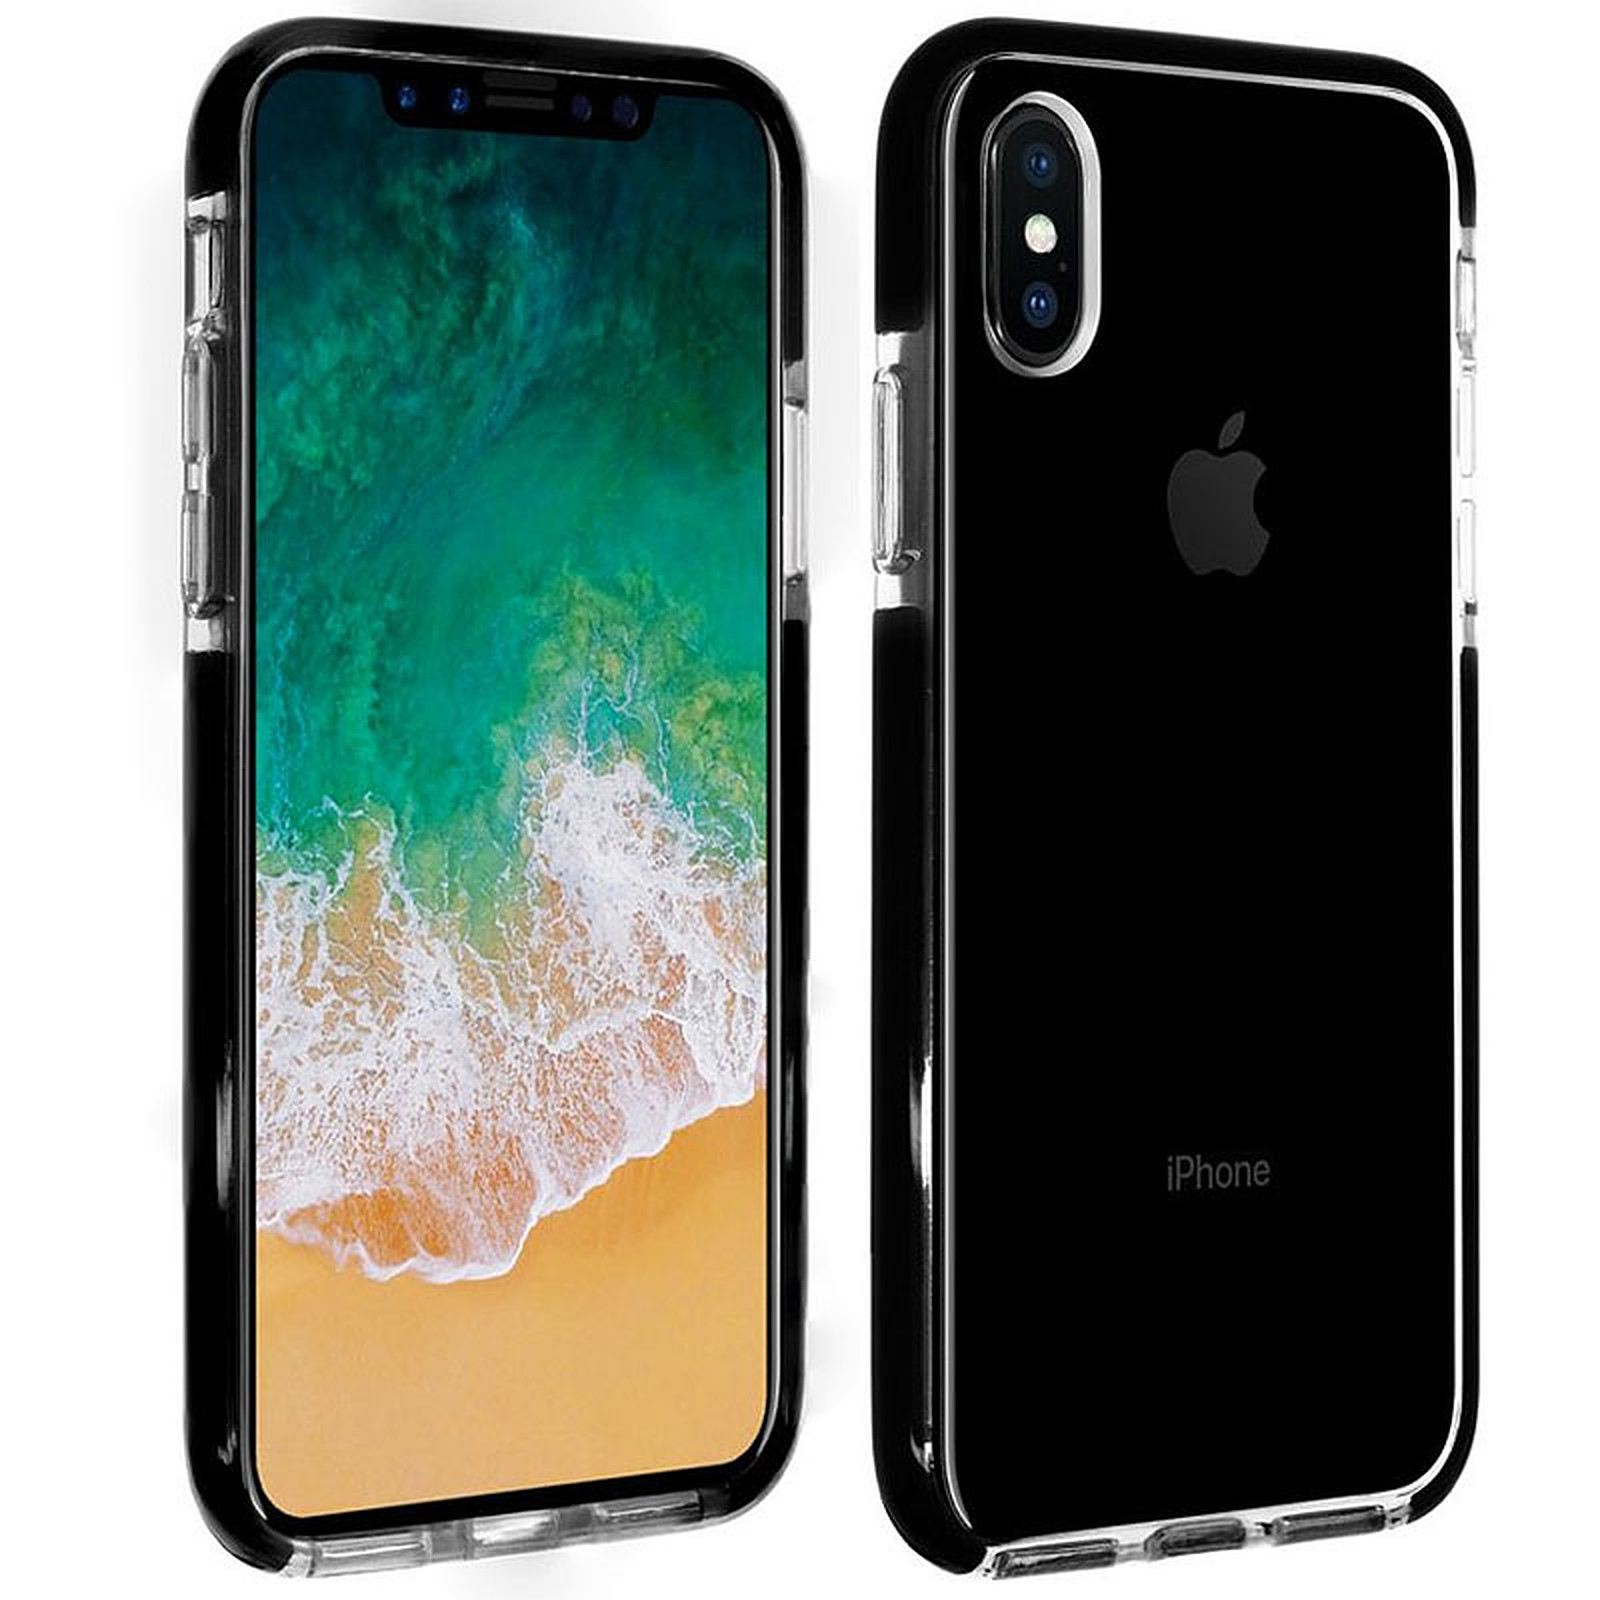 1b910ec7866 Akashi Funda TPU Ultra Reforzada iPhone Xs Max Funda de protección  transparente reforzada para Apple iPhone ...